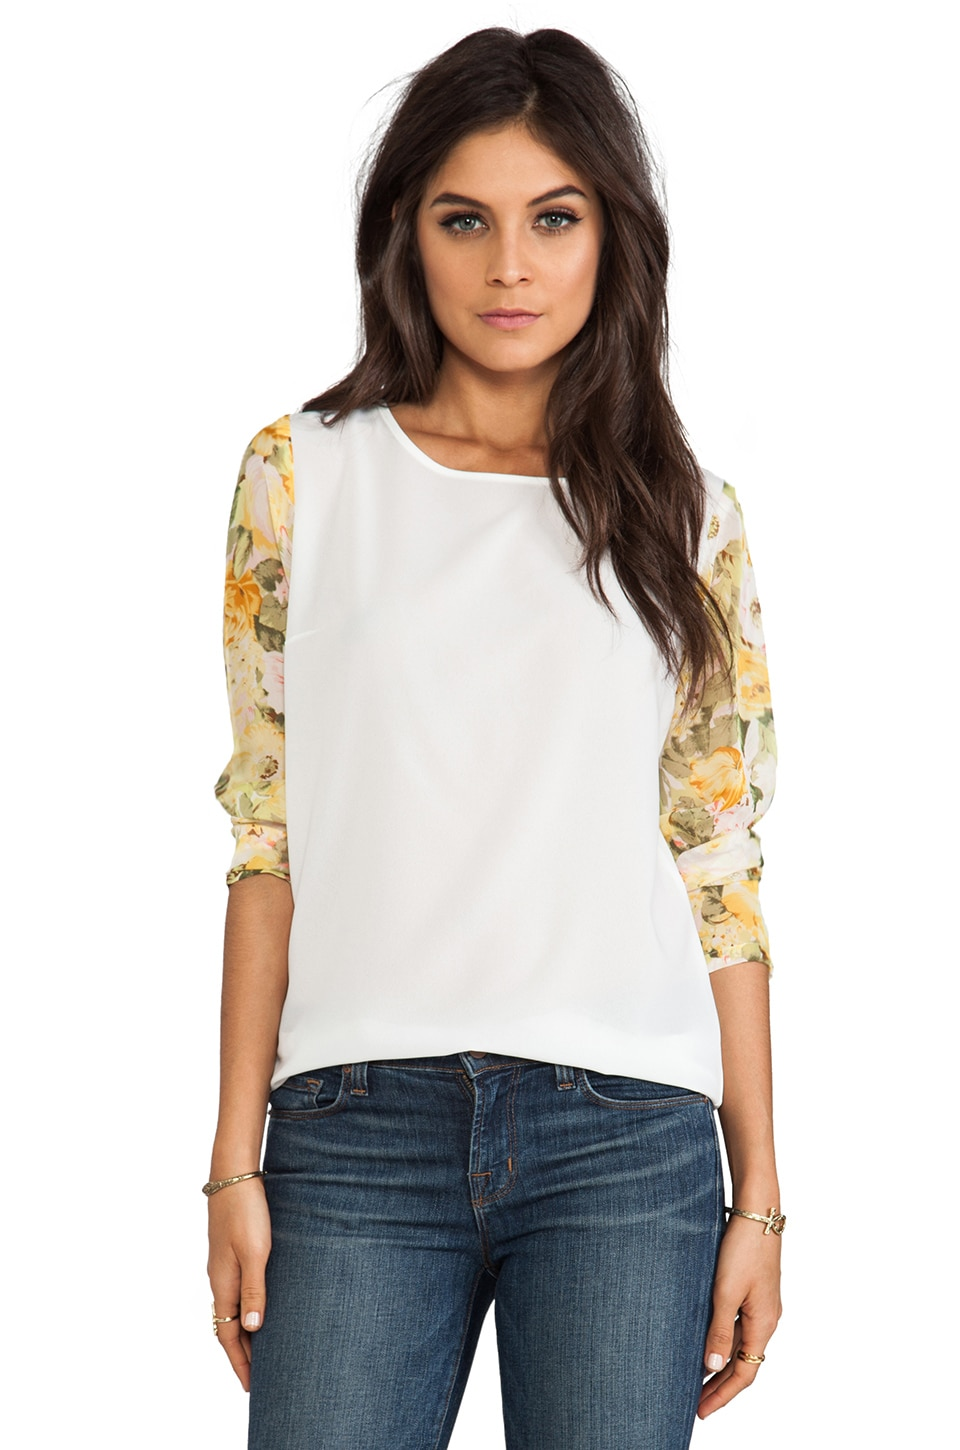 Lovers + Friends Glam Top in Floral